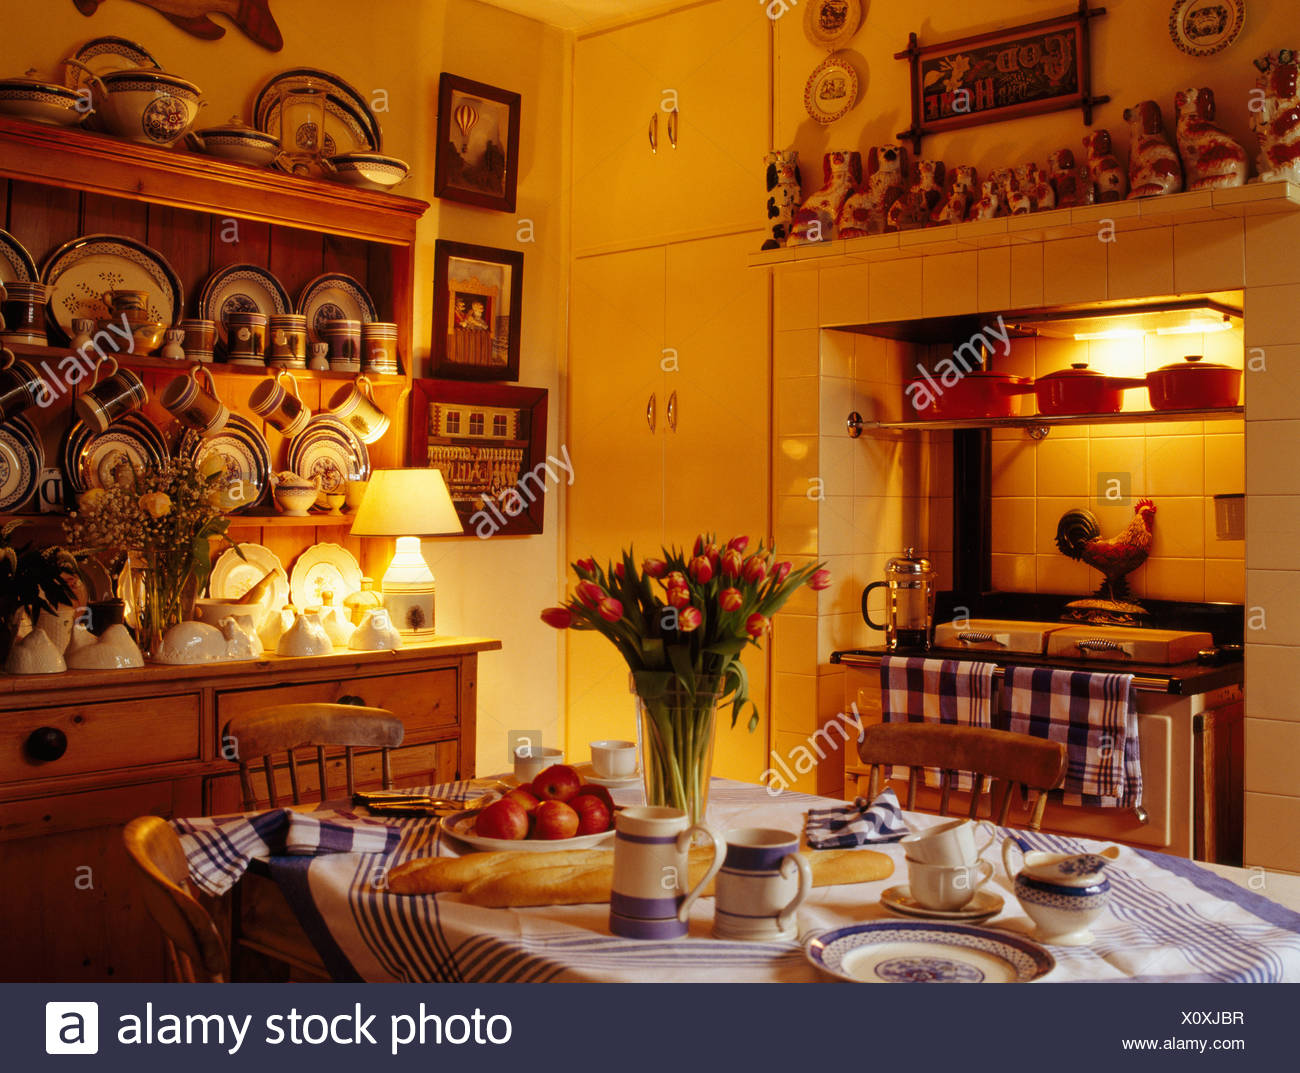 Table Set For Tea In Pale Yellow Country Kitchen With